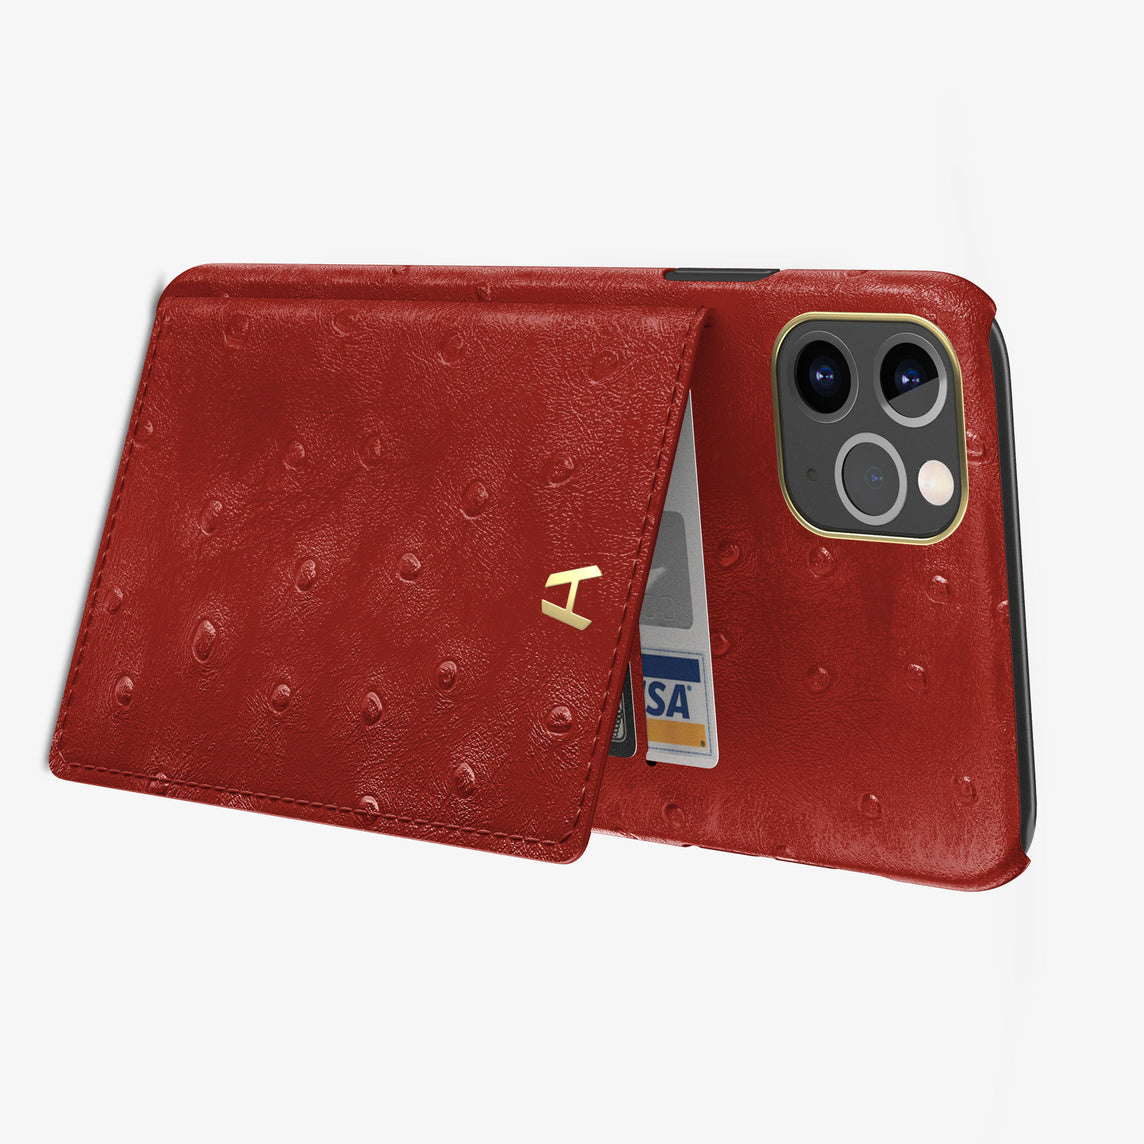 Ostrich Card Holder Flap Case iPhone 11 Pro Max | Red - Yellow Gold